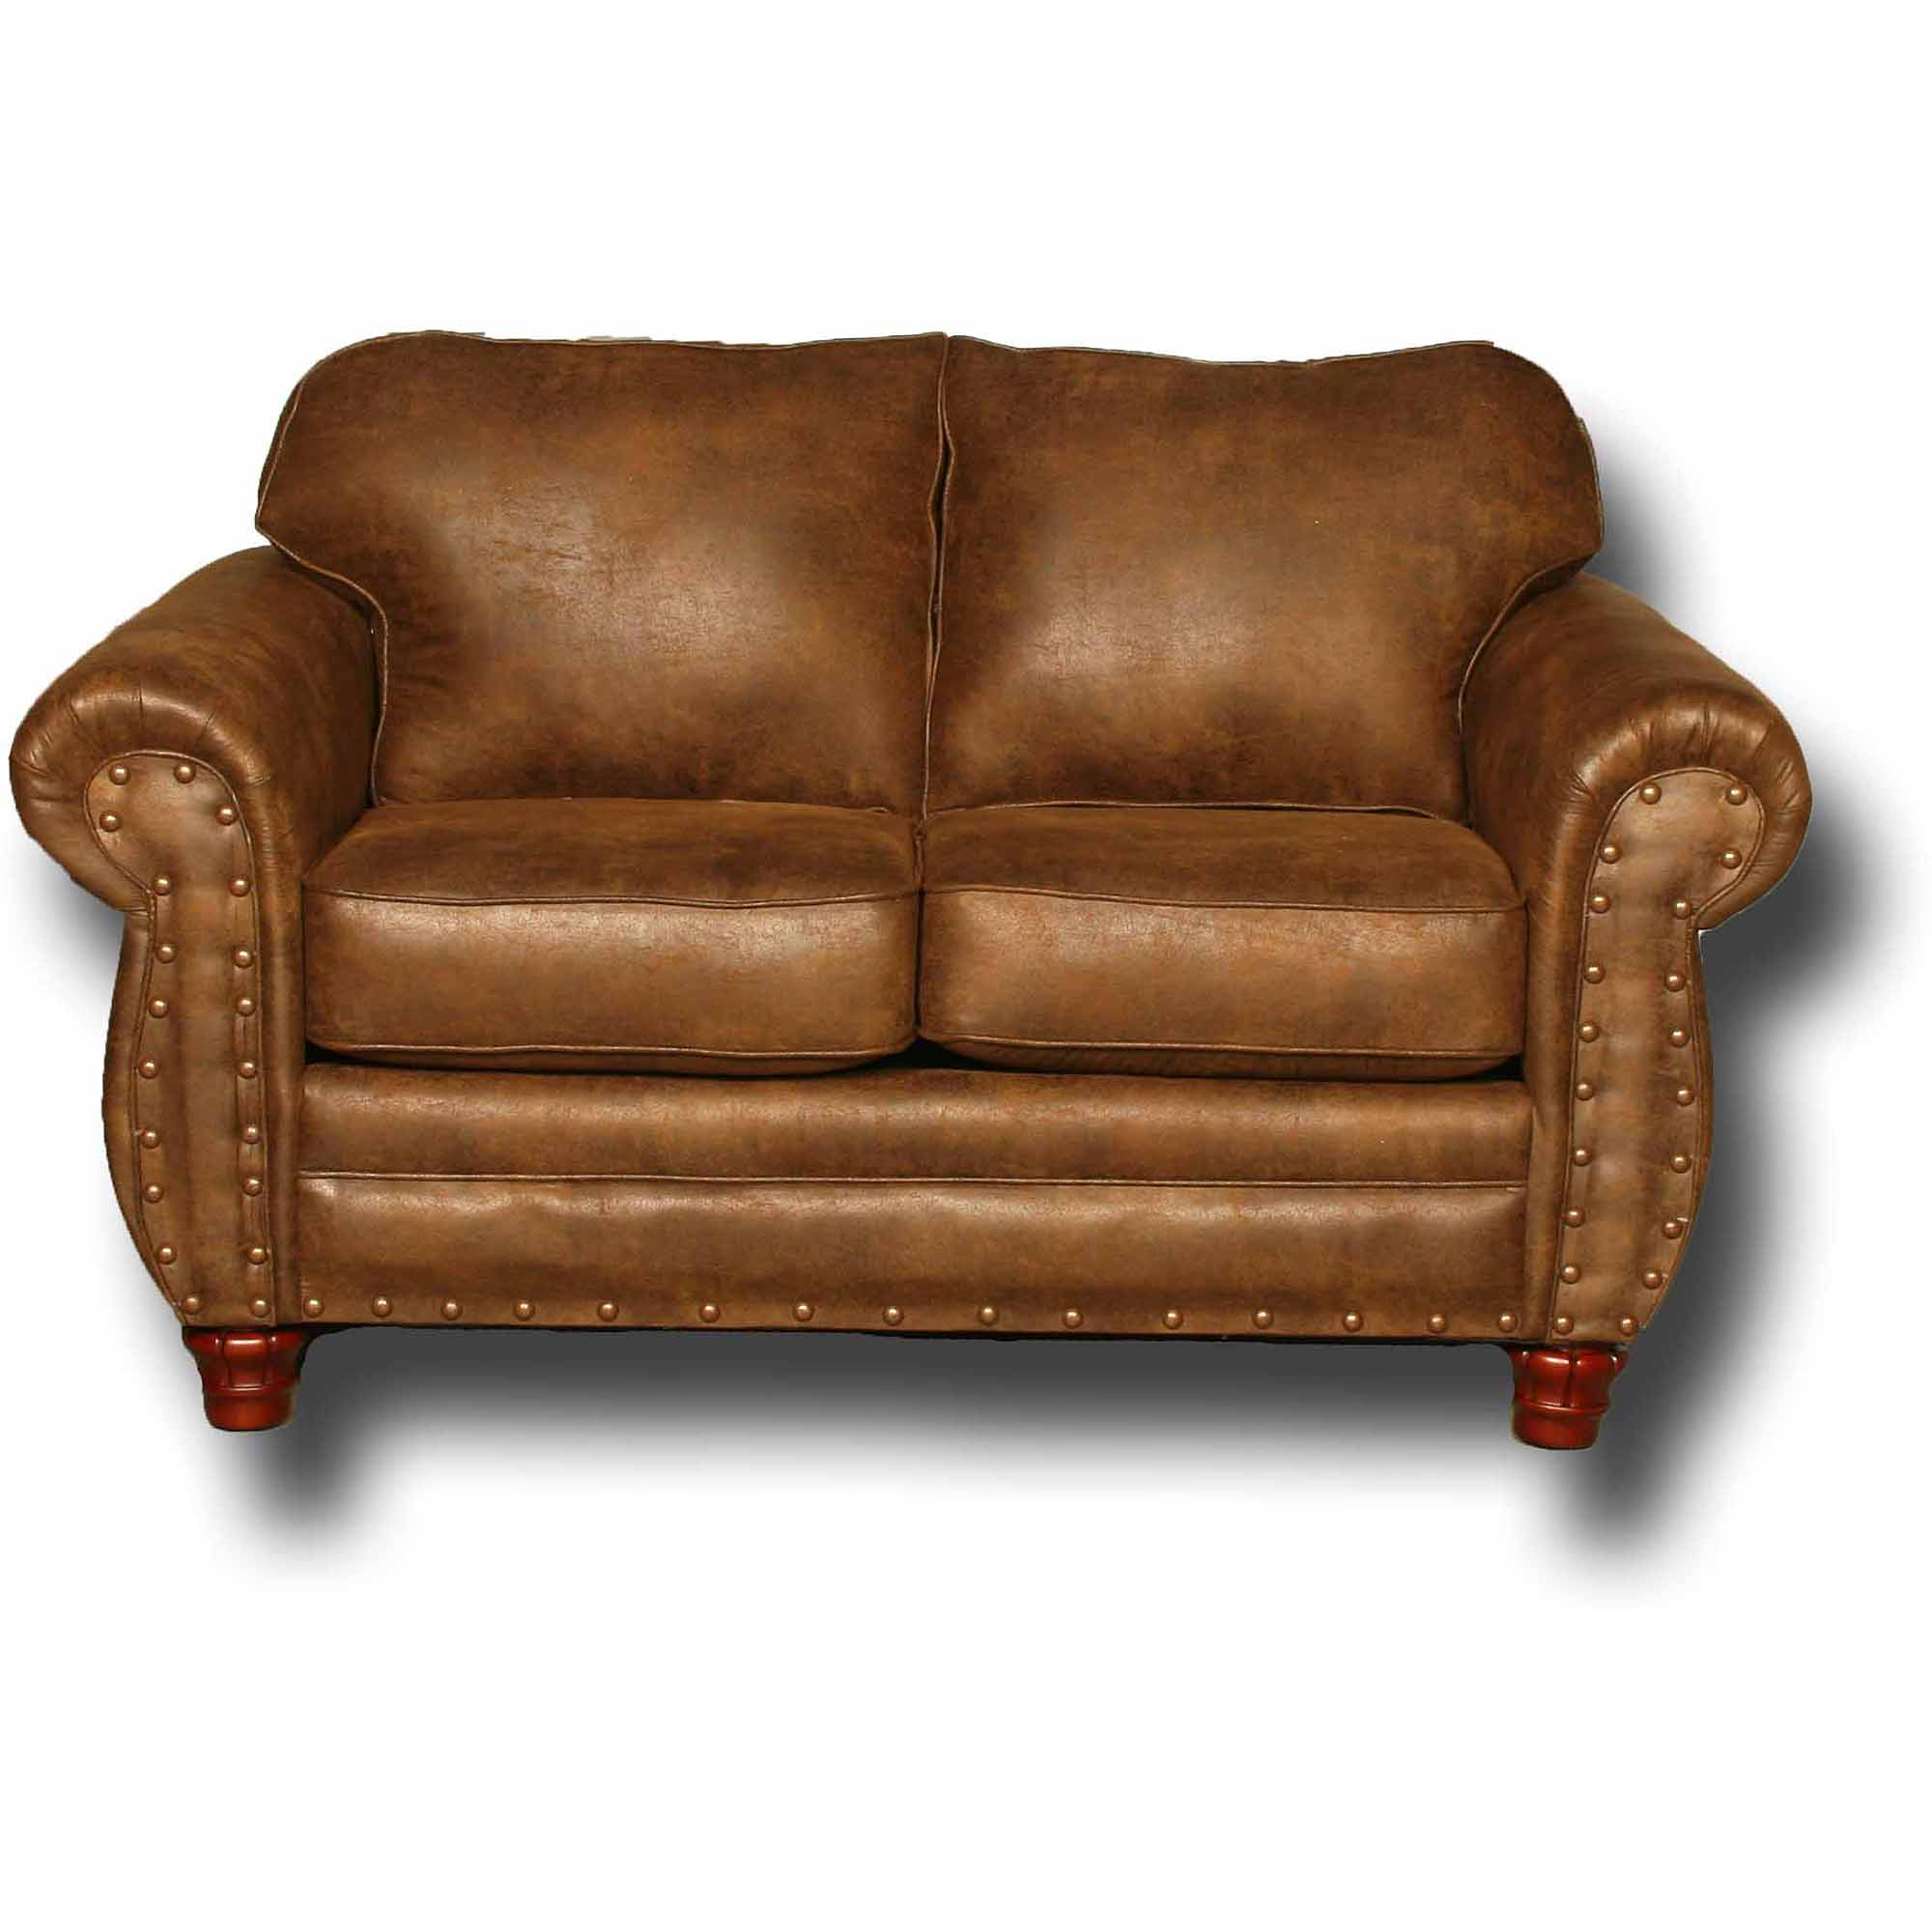 classic sofa products exposed classics style with furniture in american wood item number